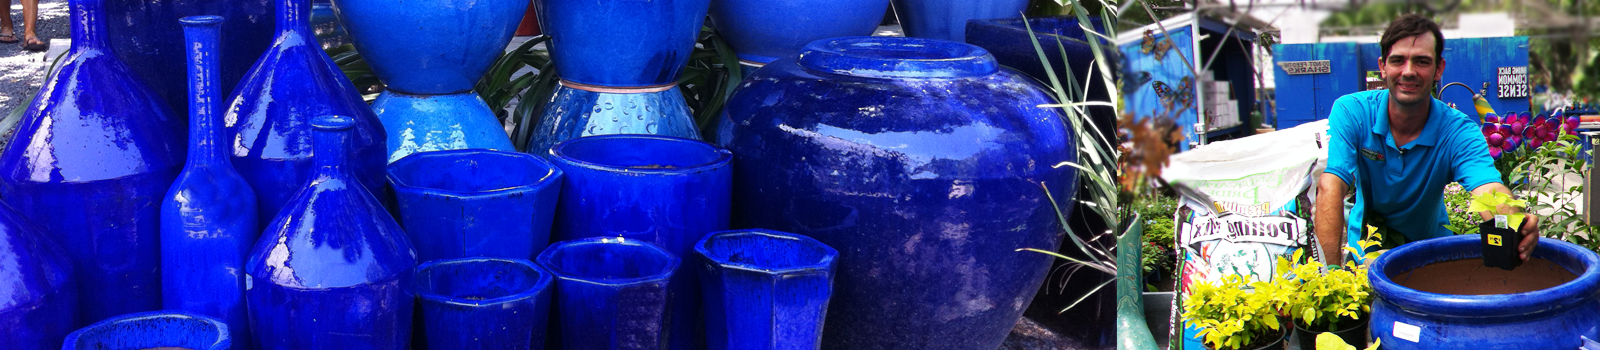 Your Source for Pottery